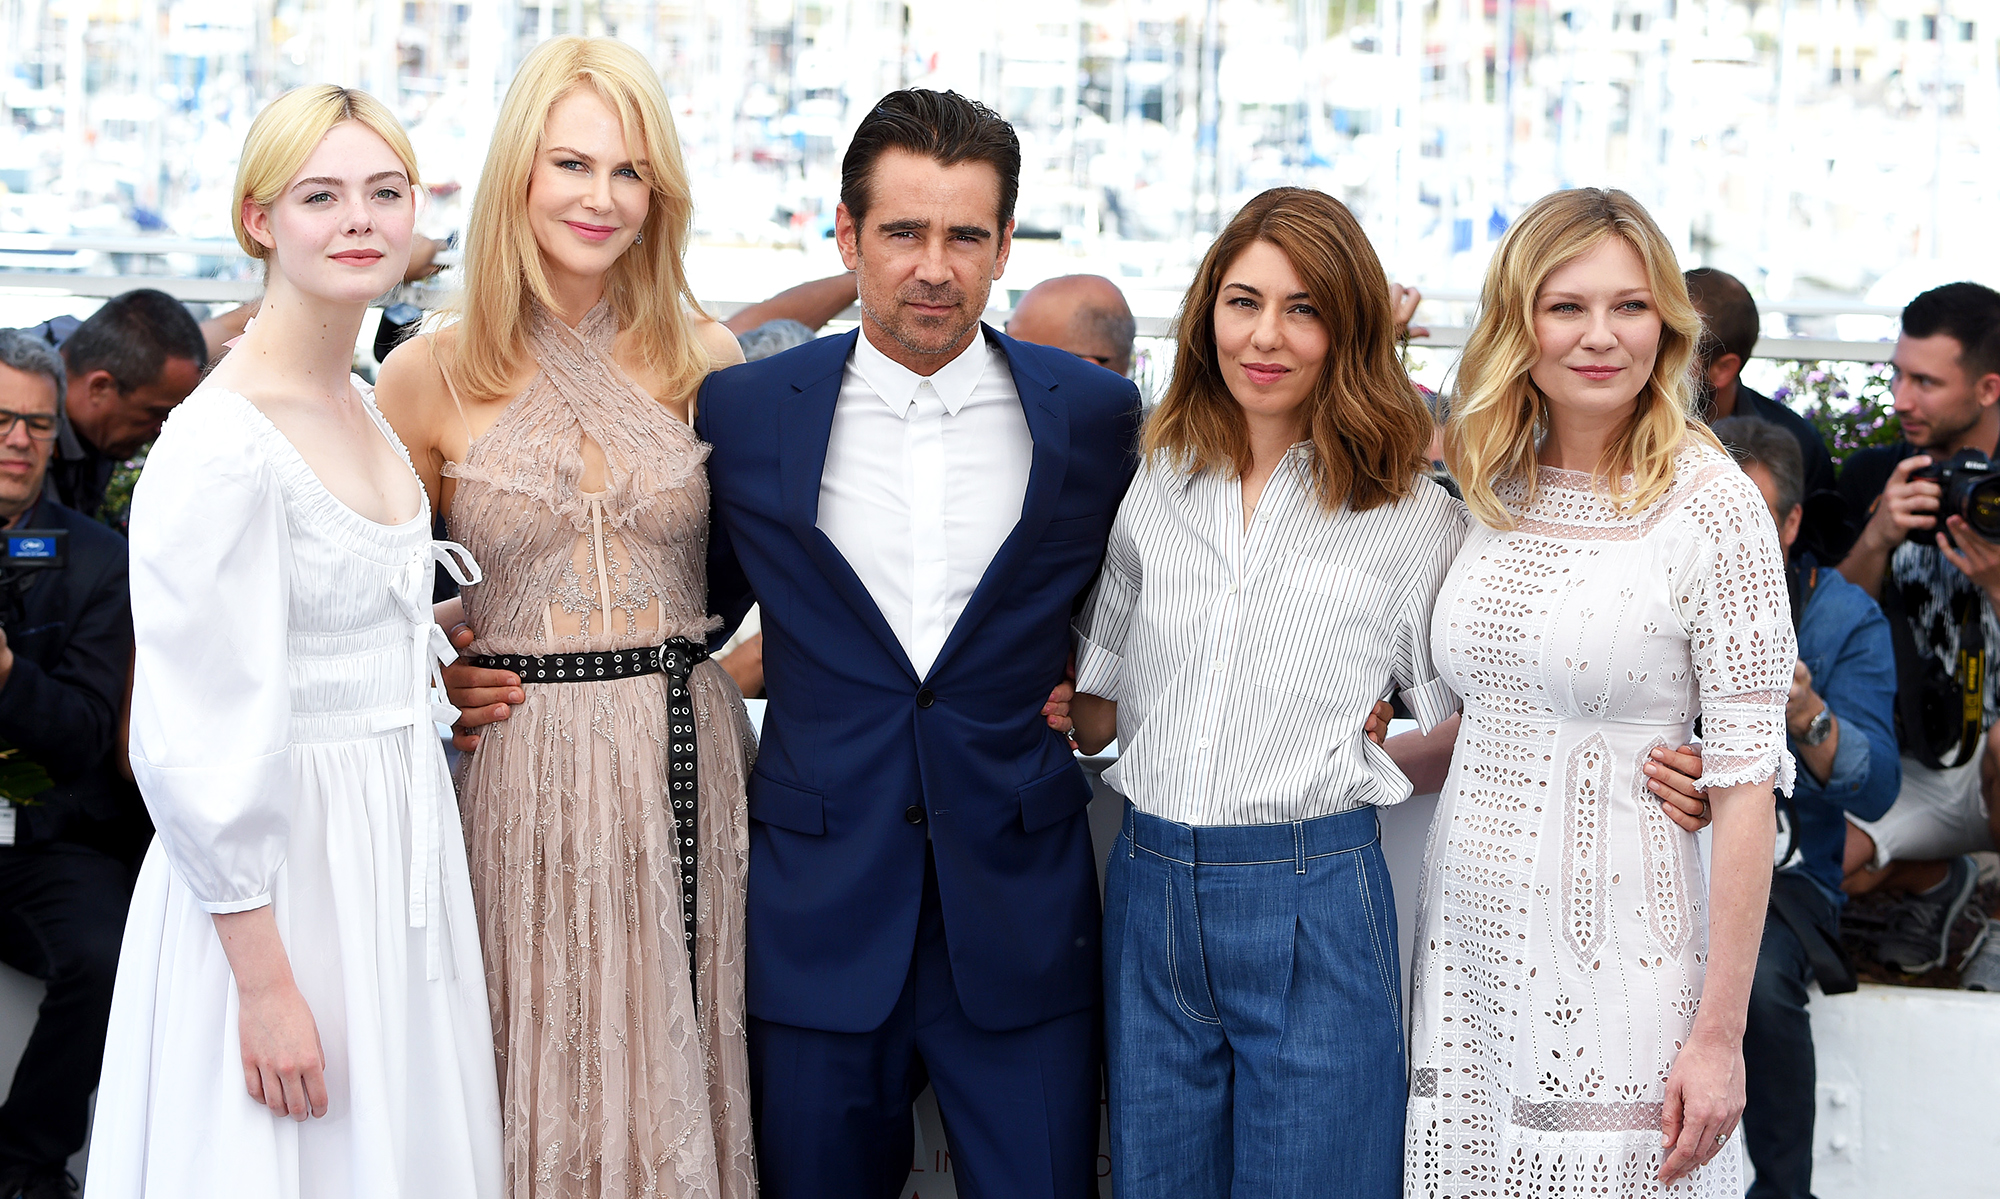 From left: Elle Fanning, Nicole Kidman, Colin Farrell, Sophia Coppola and Kirsten Dunst, on May 24, 2017 in Cannes, France.